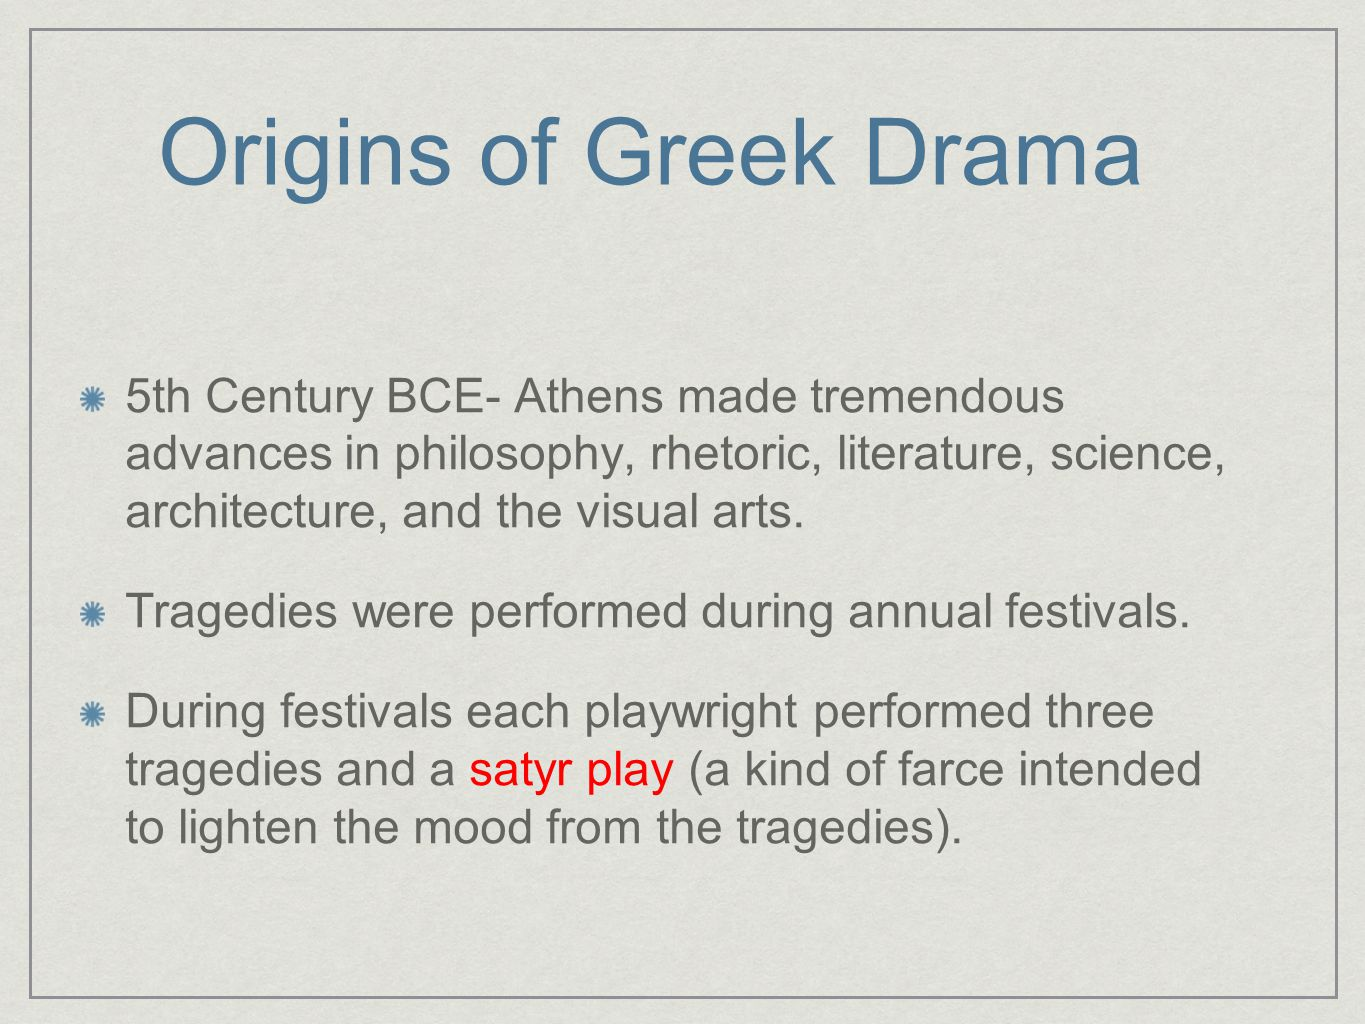 Origins of Greek Drama 5th Century BCE- Athens made tremendous advances in philosophy, rhetoric, literature, science, architecture, and the visual art